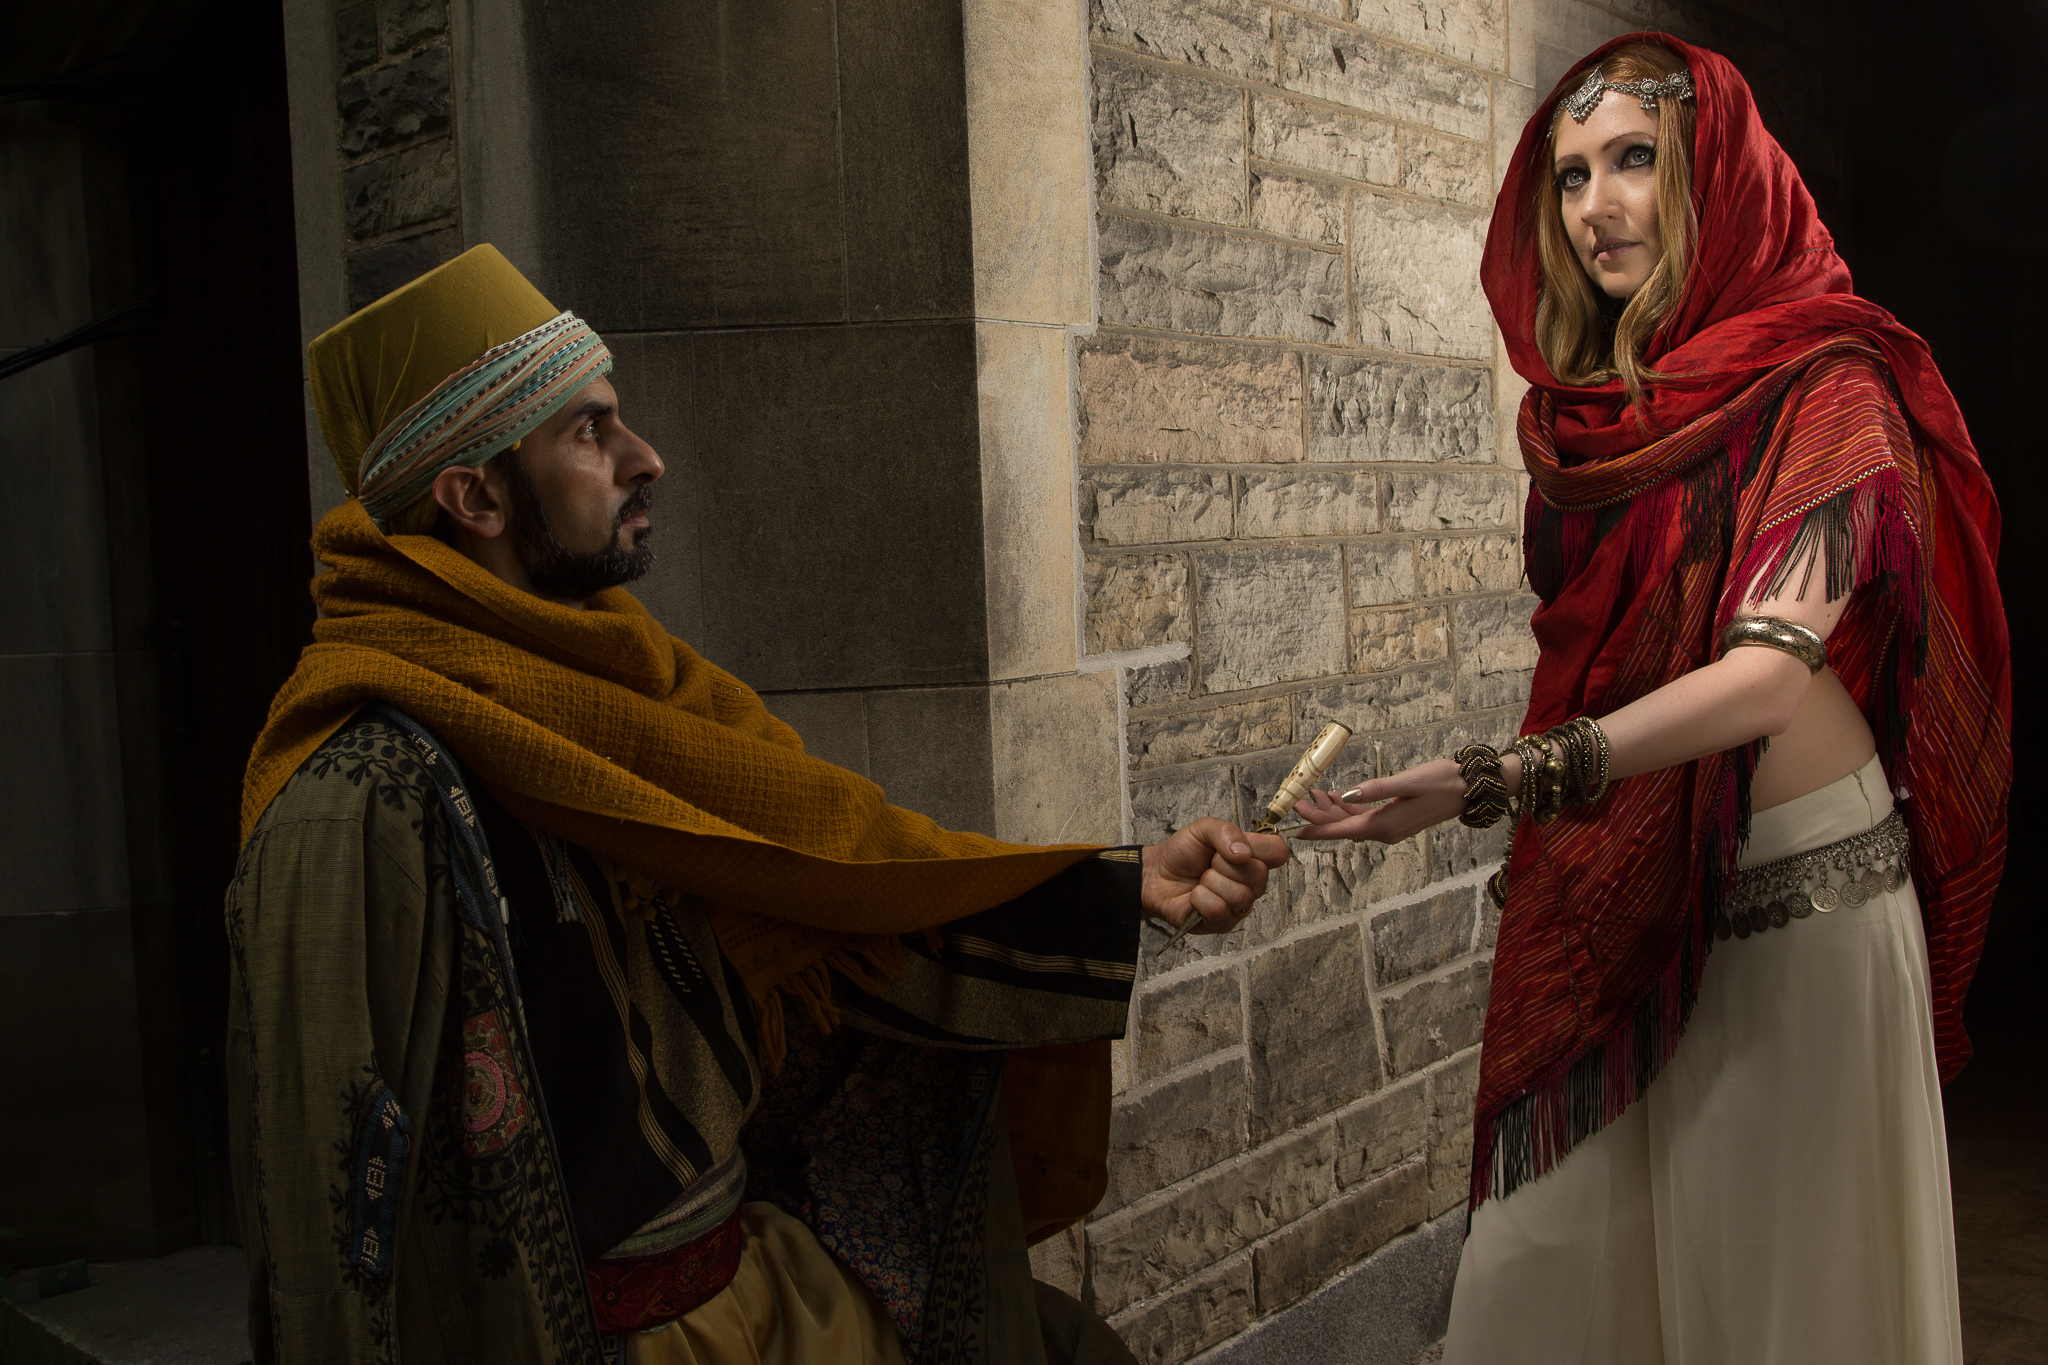 Dancers Atmo Kranti and Tatiana K, photographed for The Orientalist in Toronto, Canada.